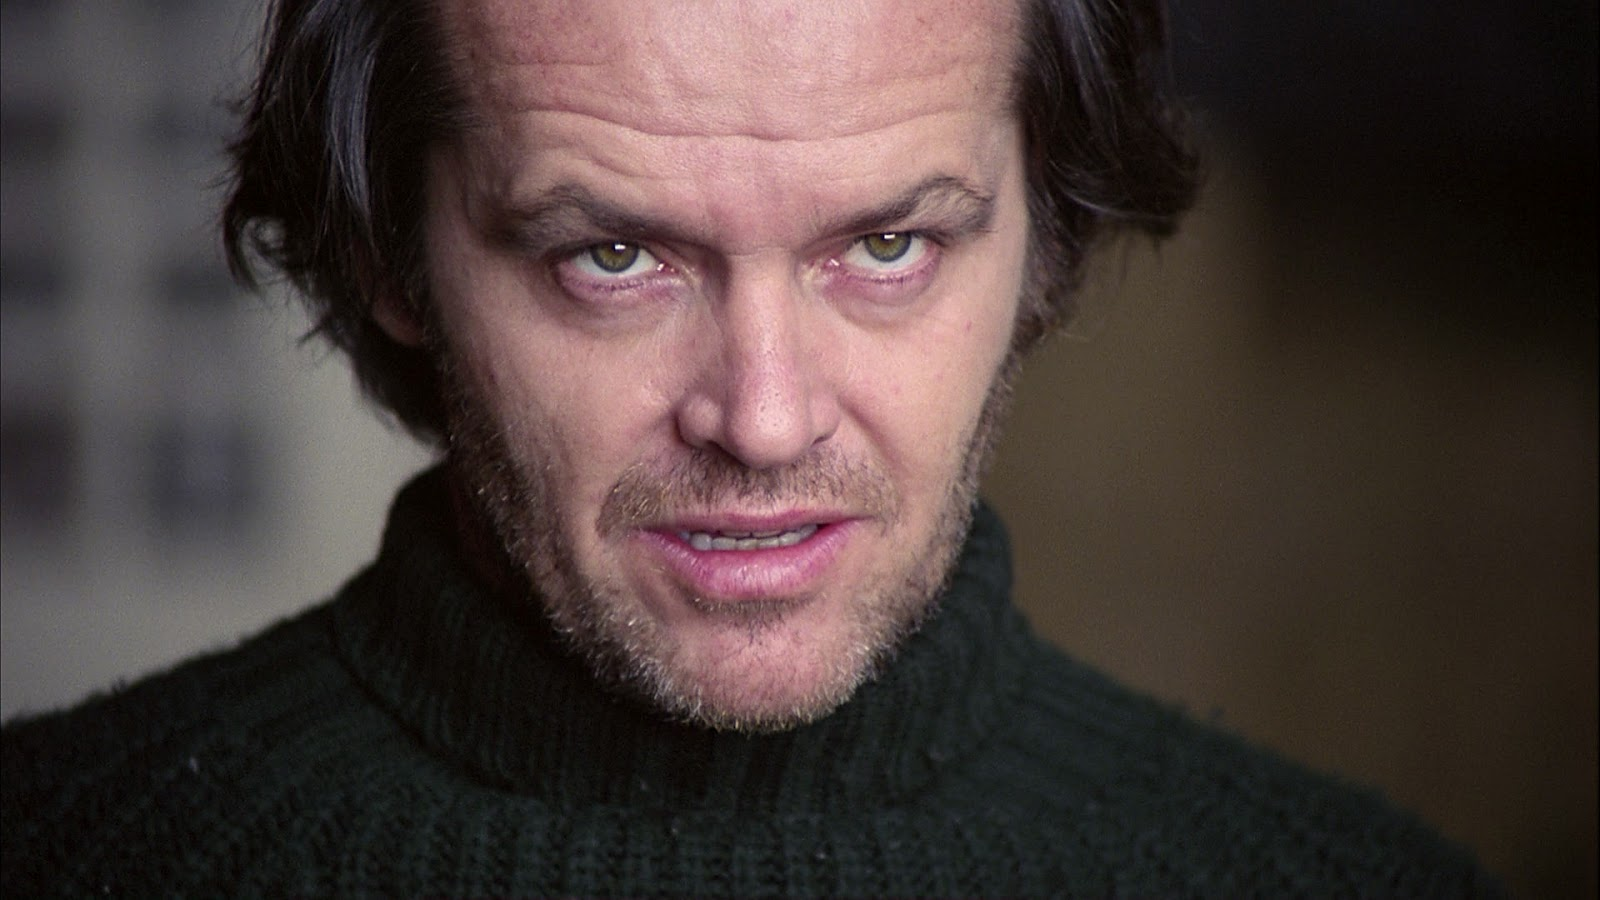 The Top Ten Winter Misery Genre Movies - The Shining (1980)